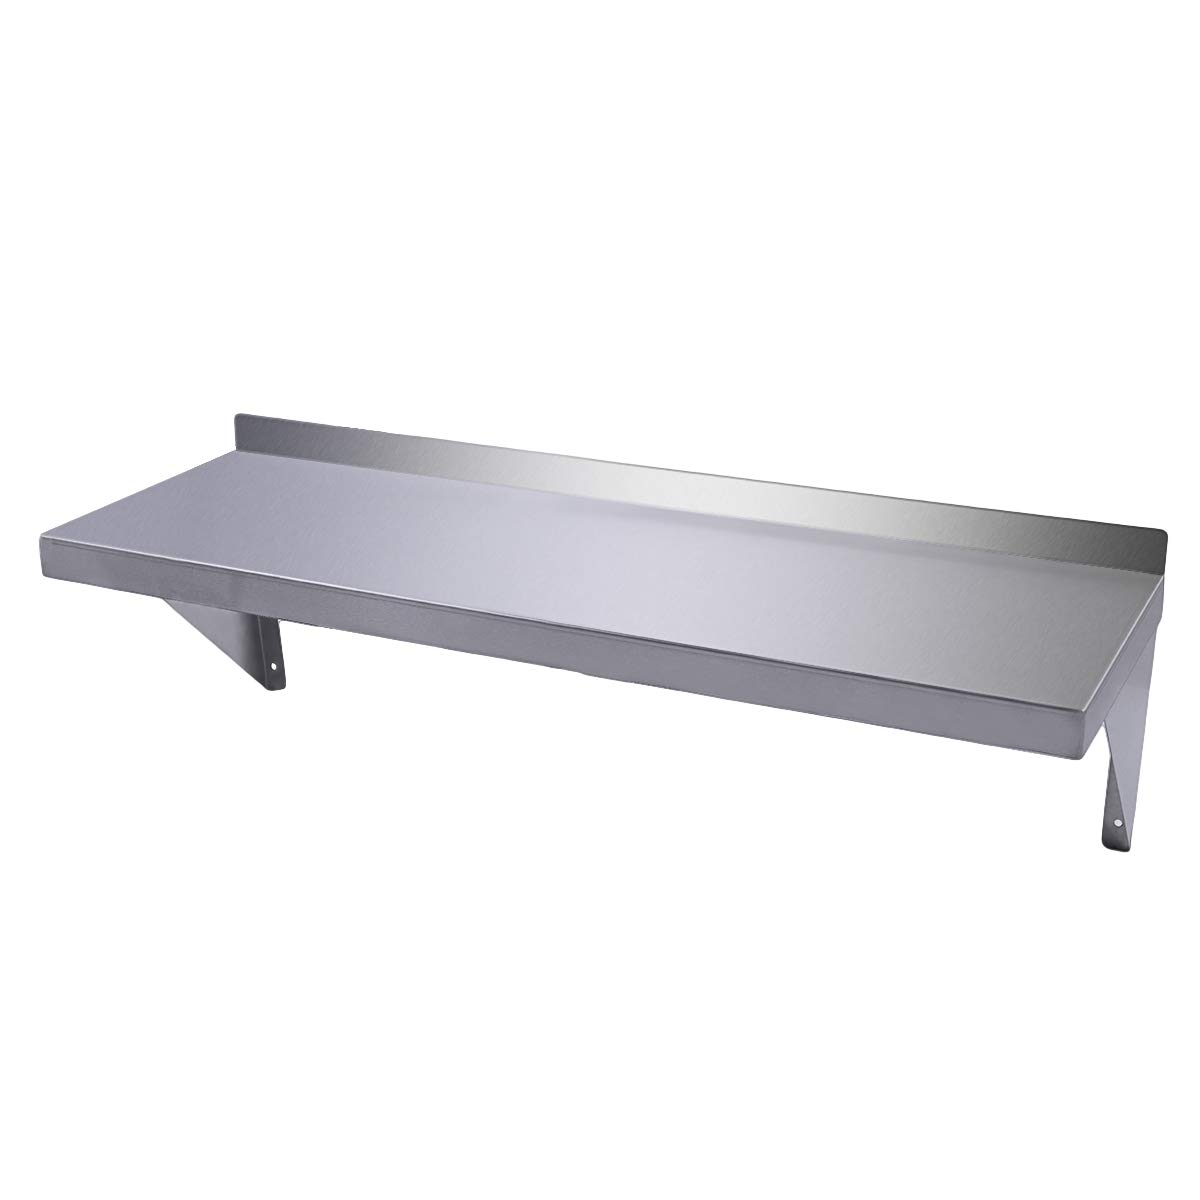 LAZYMOON Floating Wall Shelves Commercial Stainless Steel Kitchen Wall Shelf 12''x 36''